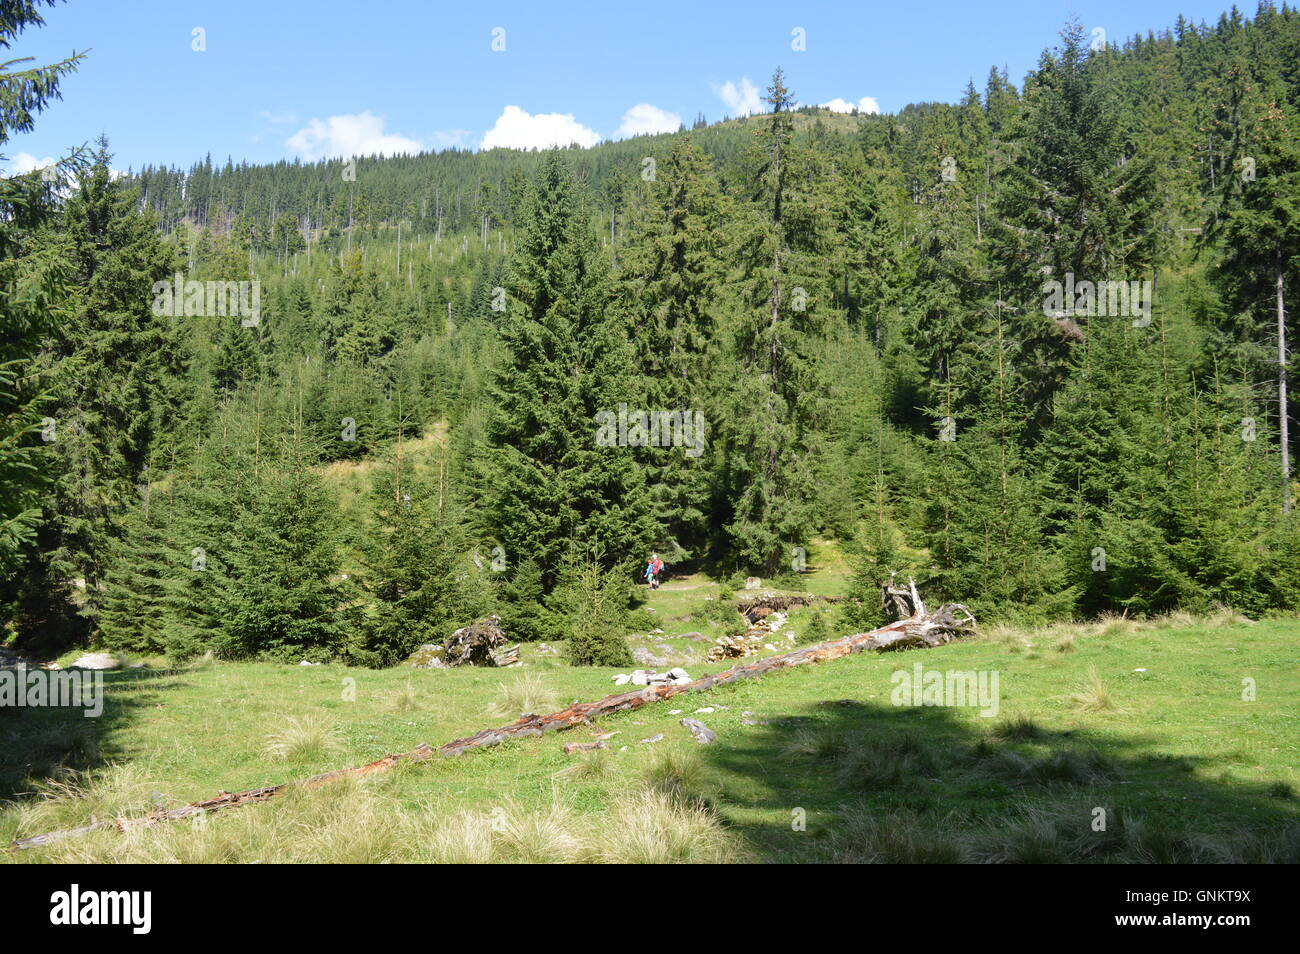 A coniferous forest - Stock Image